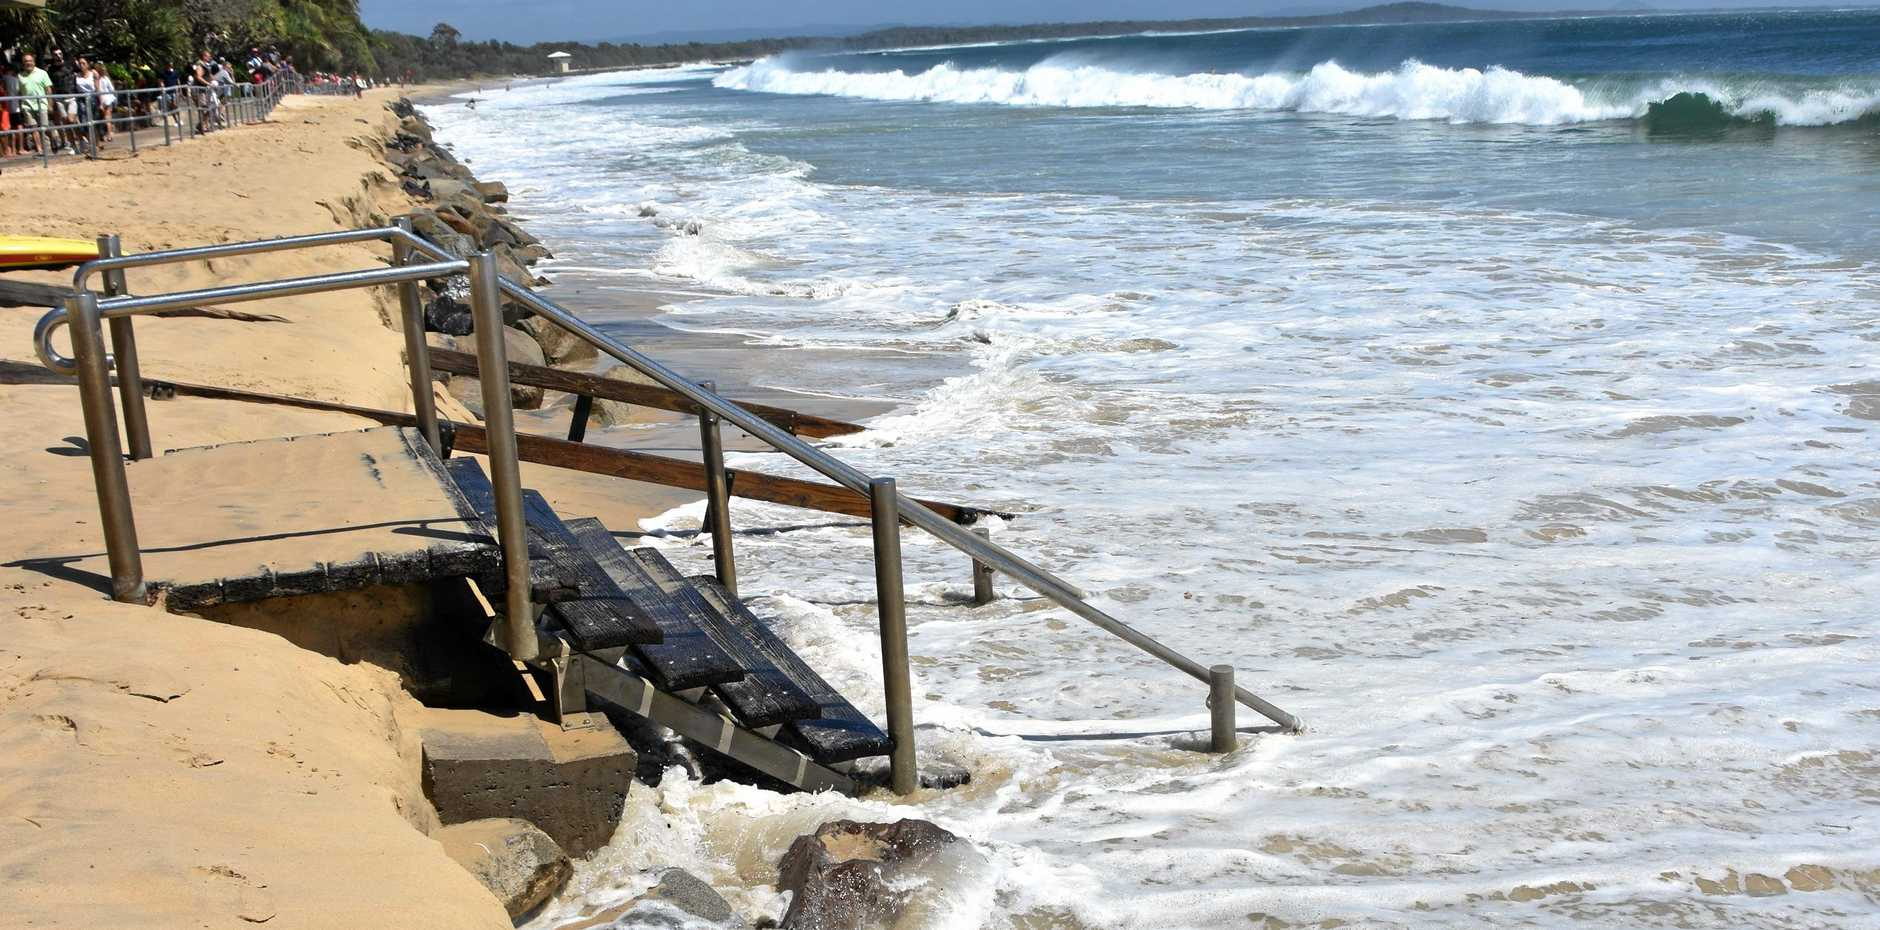 noosa queensland flooded by rising ocean levels